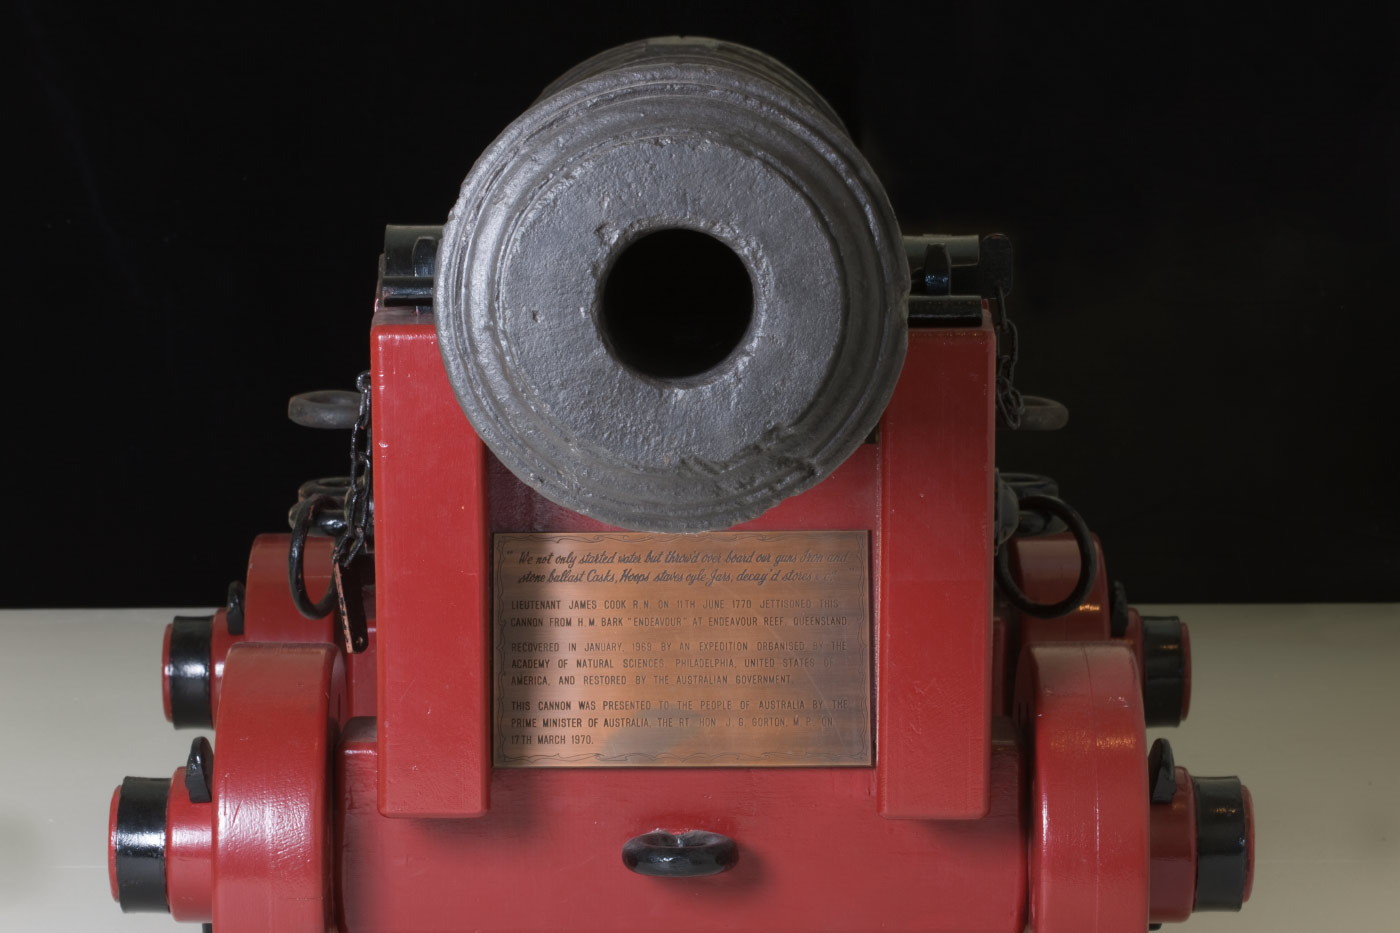 Colour photo of a cast-iron cannon mounted on a red base on wheels. A small, bronze plaque is mounted on the base under the cannon. - click to view larger image